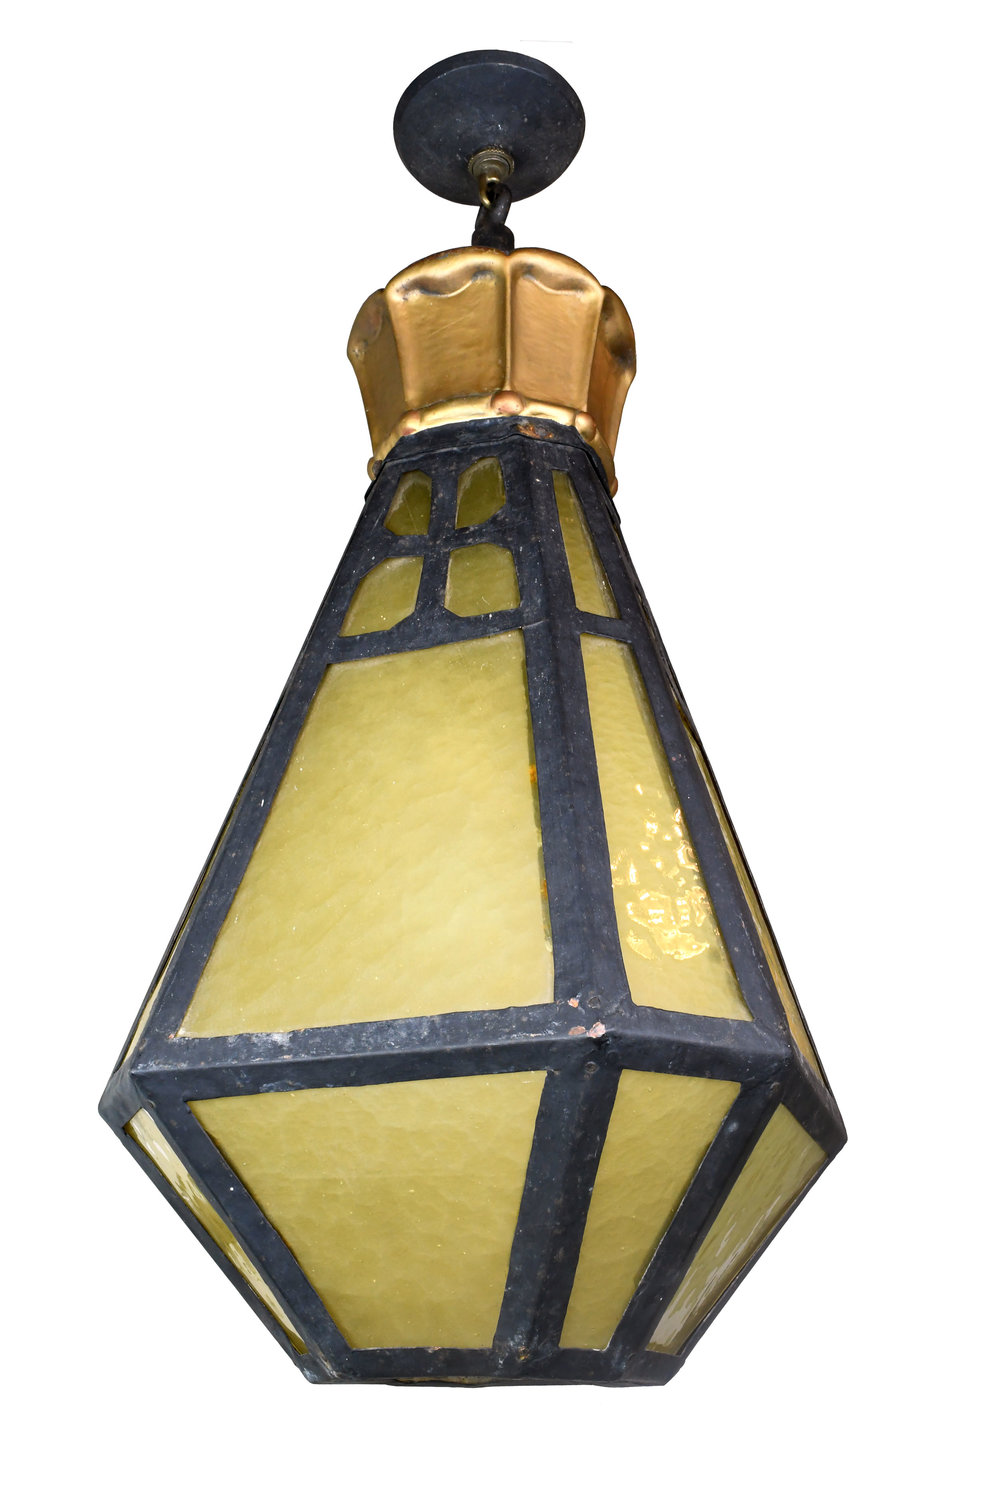 47330-amber-six-sided-pendant-lower-angle.jpg